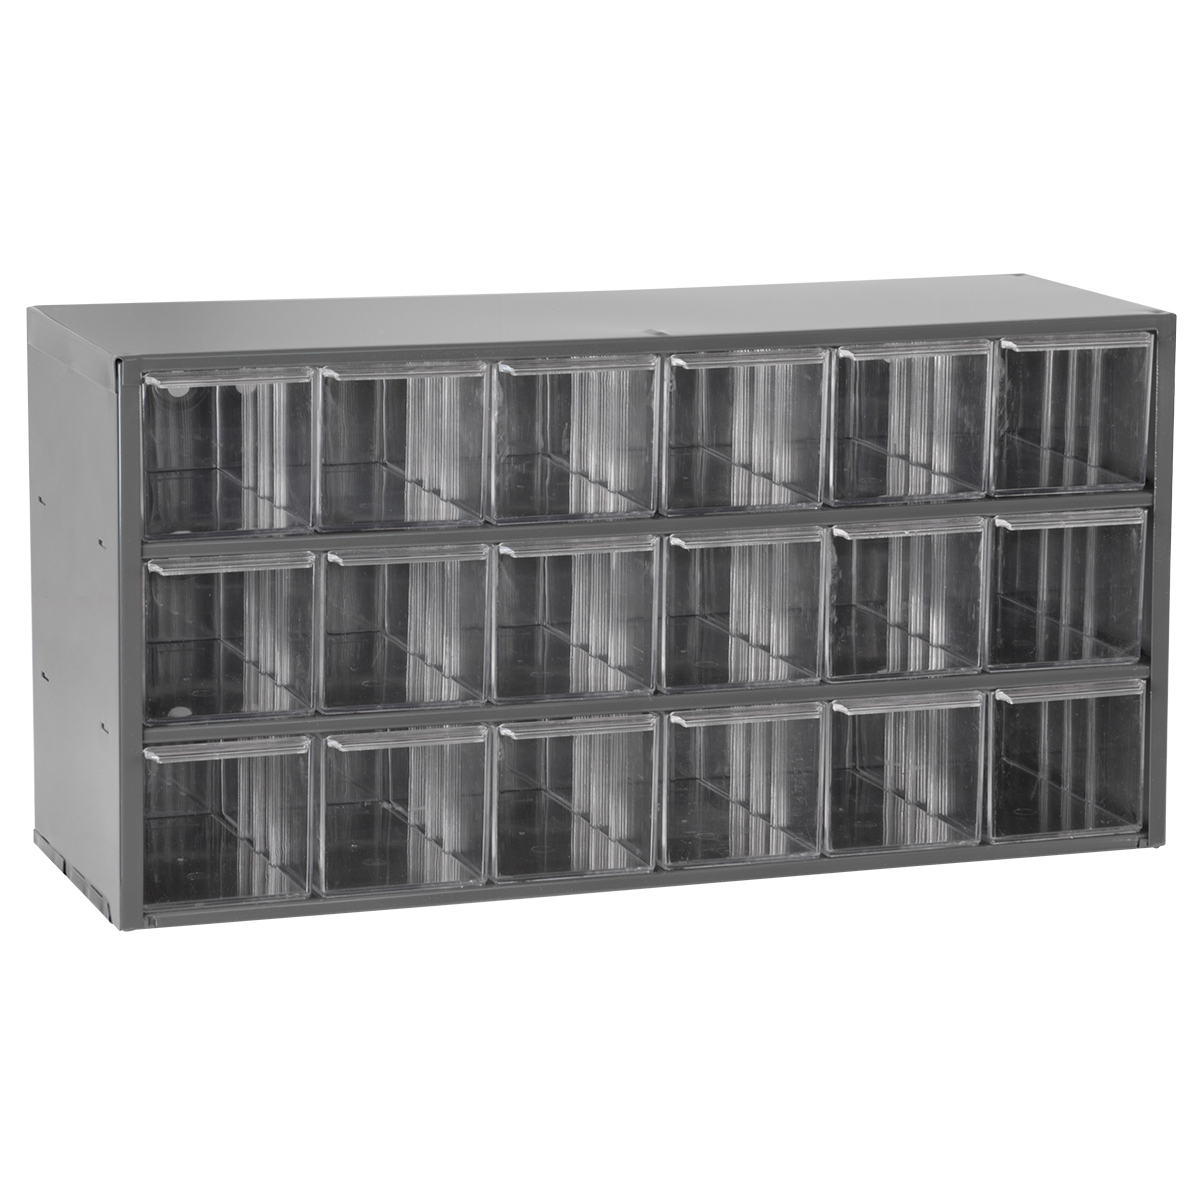 17-Series Steel Cabinet w/ 18 Drawers, Gray (17018).  This item sold in carton quantities of 1.